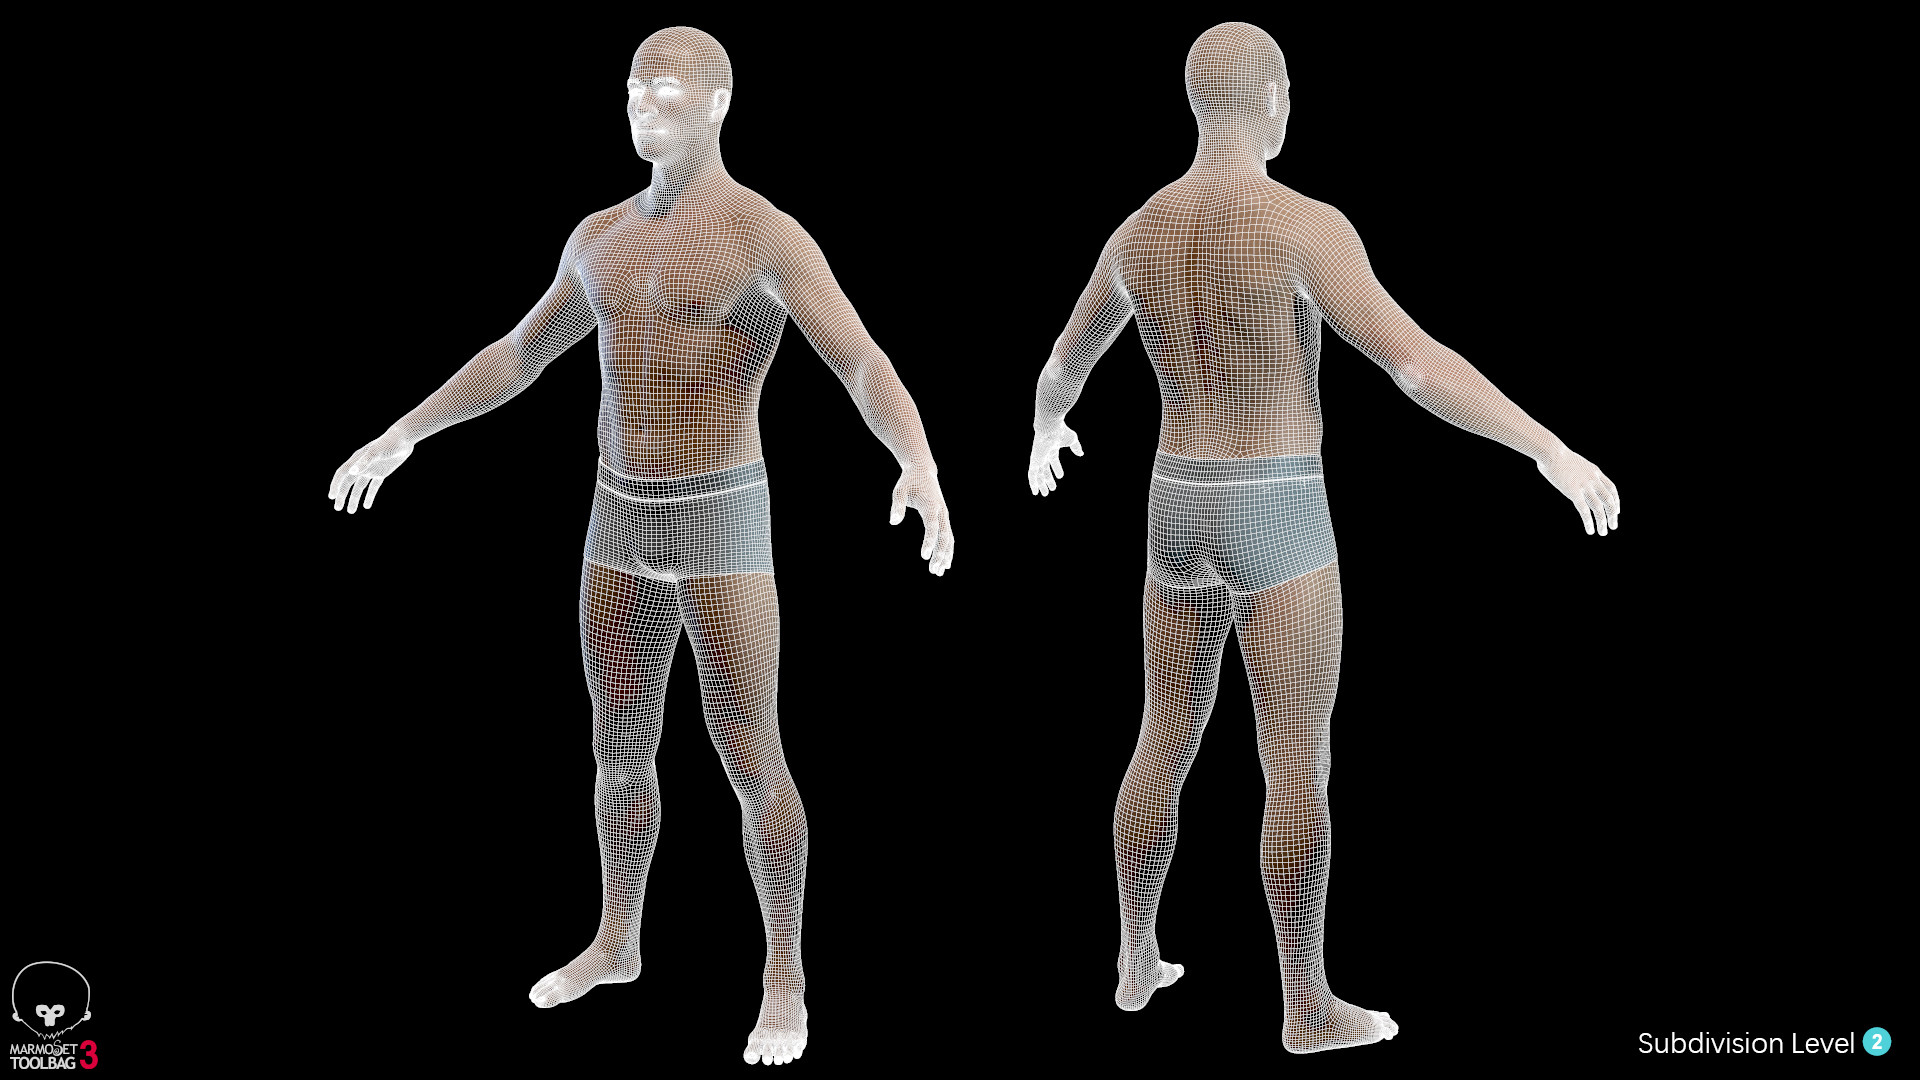 Alex lashko averagemalebody by alexlashko wireframe 09